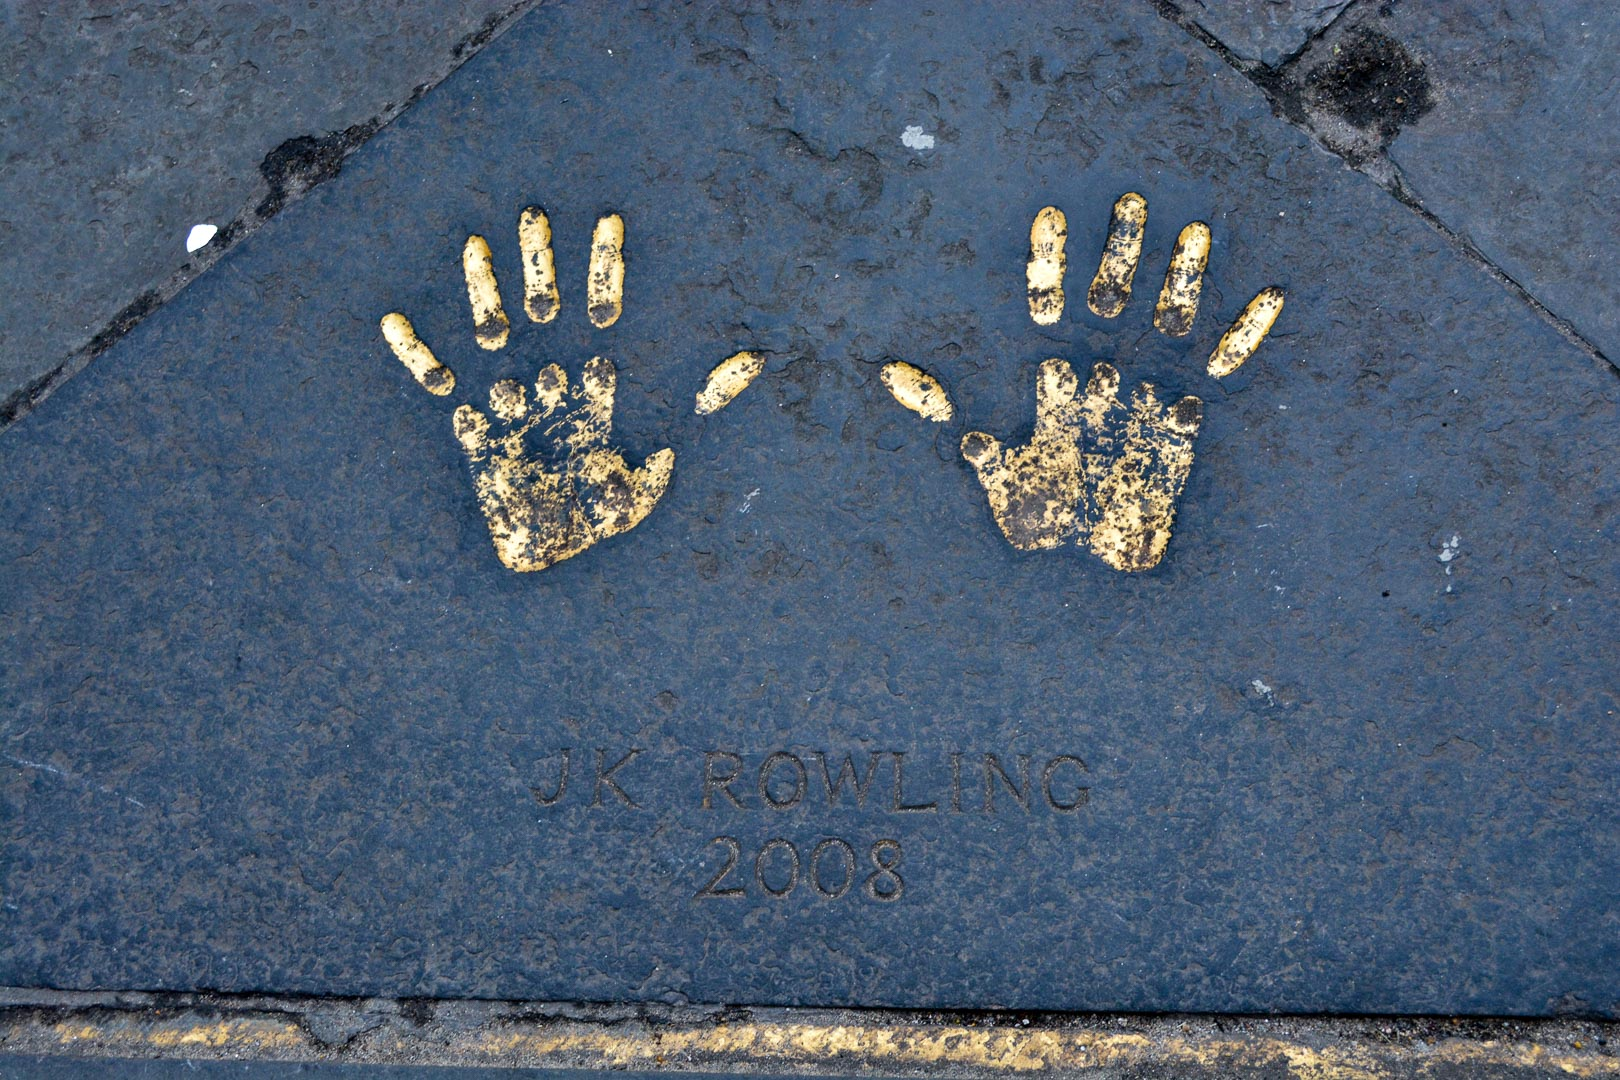 JK Rowling's handprints. The guide said her hands were tiny. When I put my hands inside of hers to compare Bryan laughed hysterically because mine were even smaller.